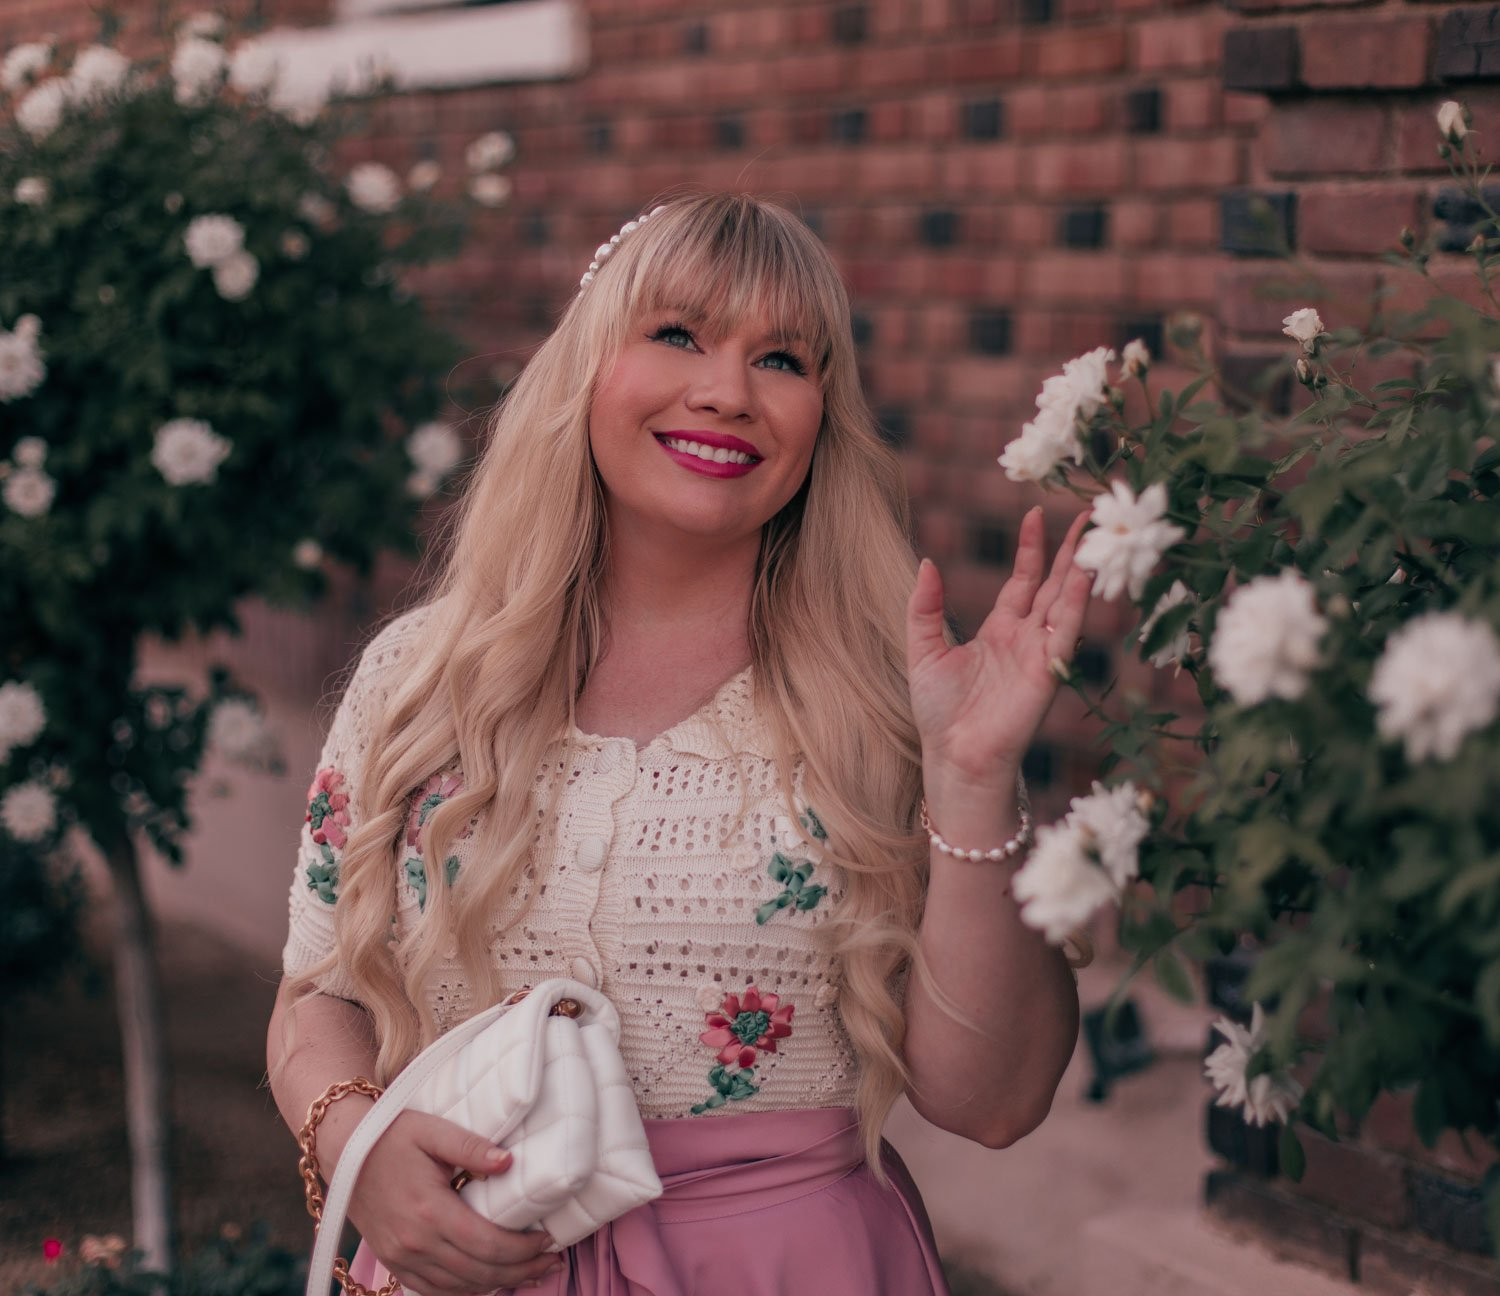 Feminine fashion blogger Elizabeth Hugen of Lizzie in lace shares How to Wear a Vintage Inspired Cardigan for Summer including a white quilted handbag